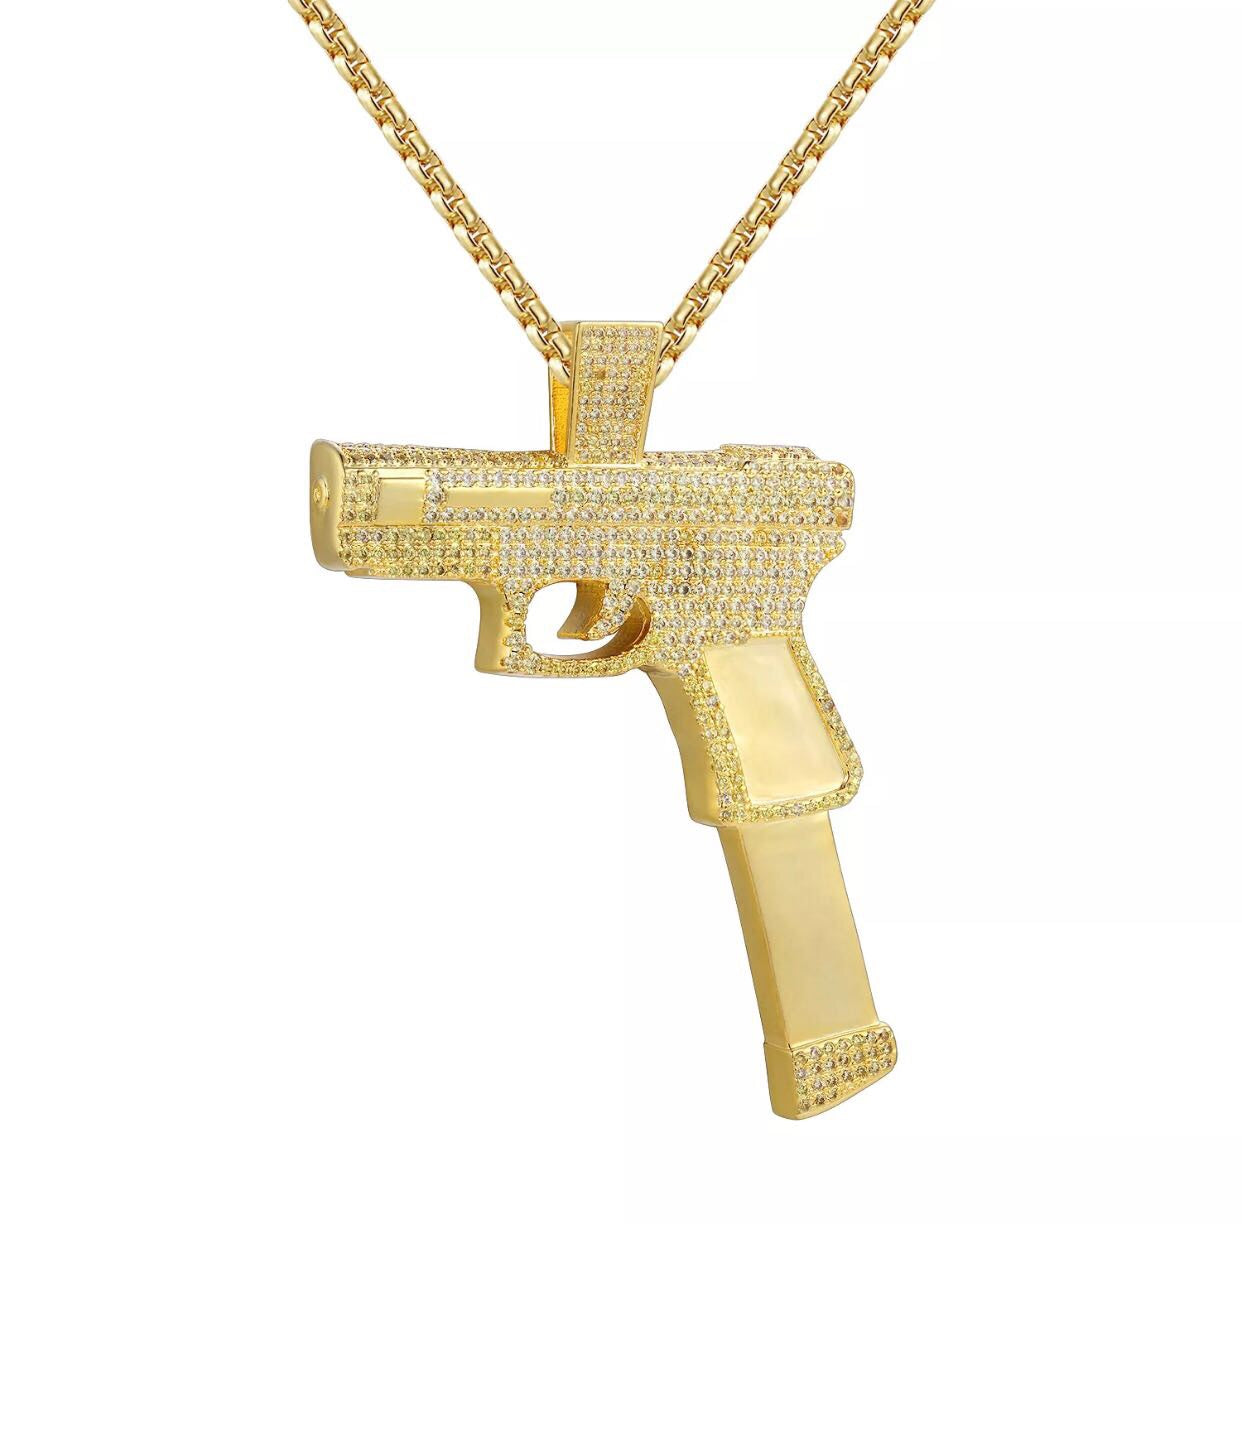 Gun pendantnecklace jp305 gun pendantnecklace mozeypictures Images